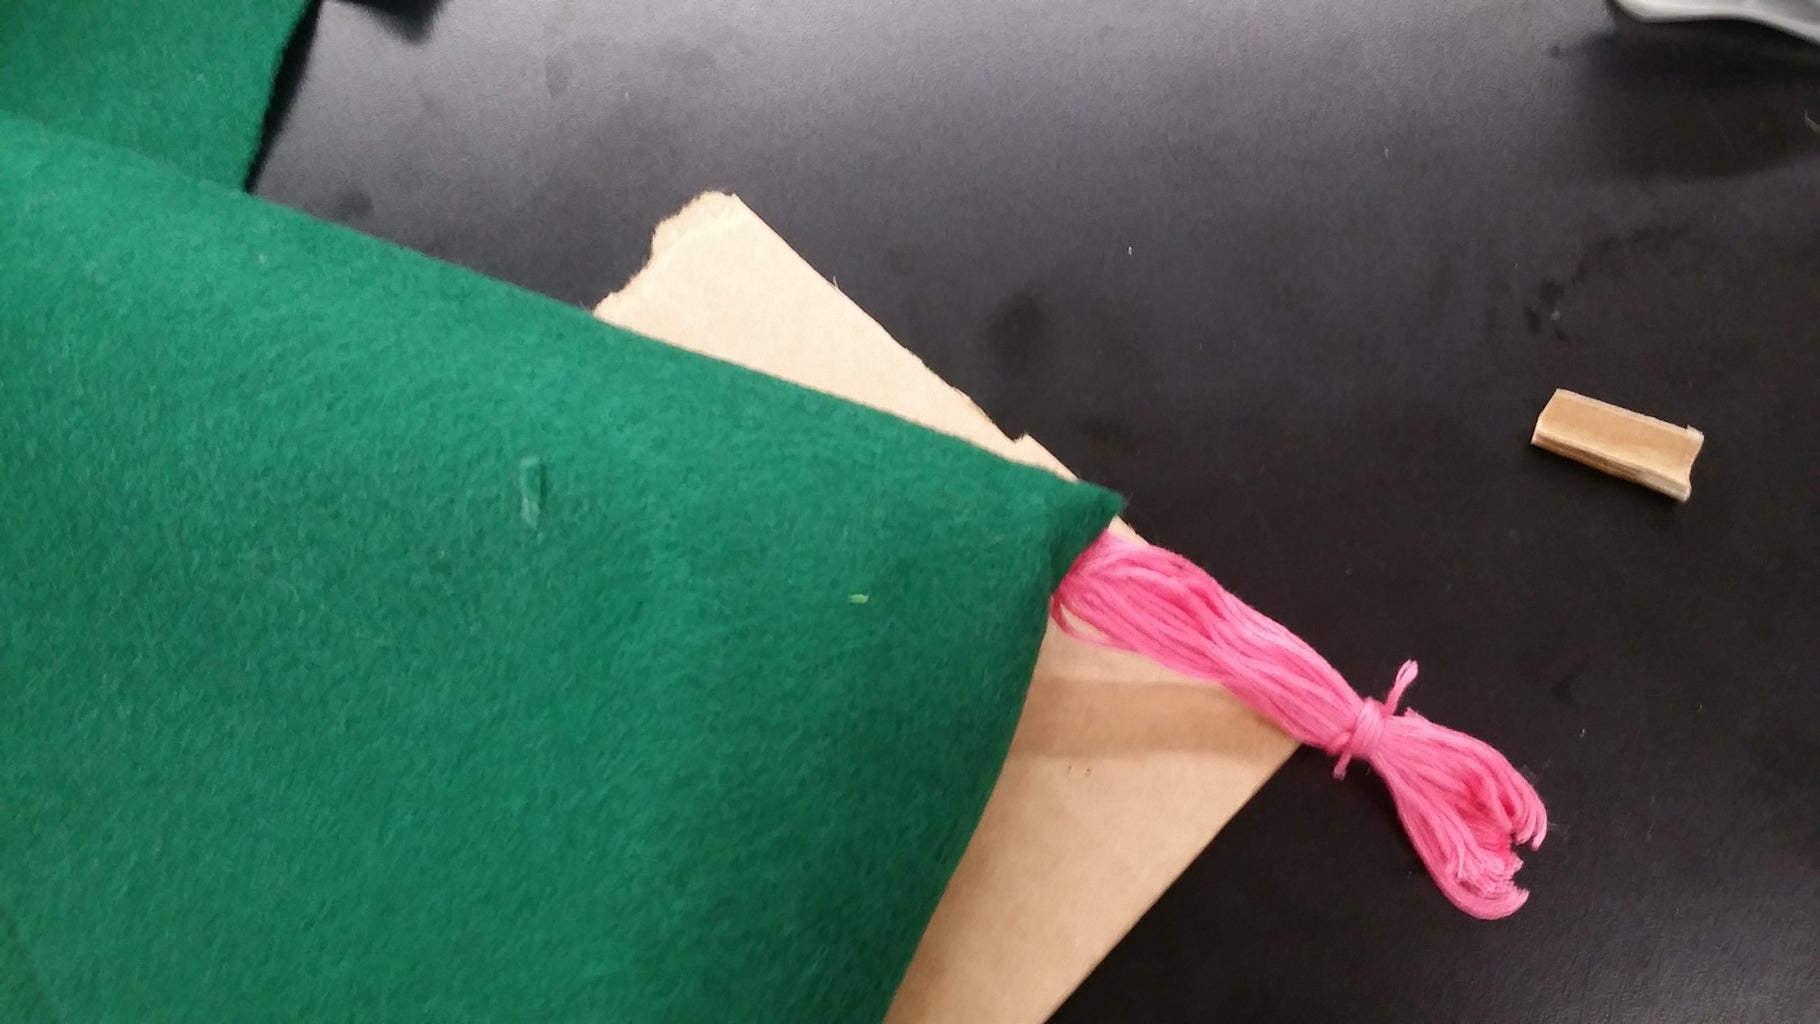 Put the Cardboard Inside and Attach the Thread to It